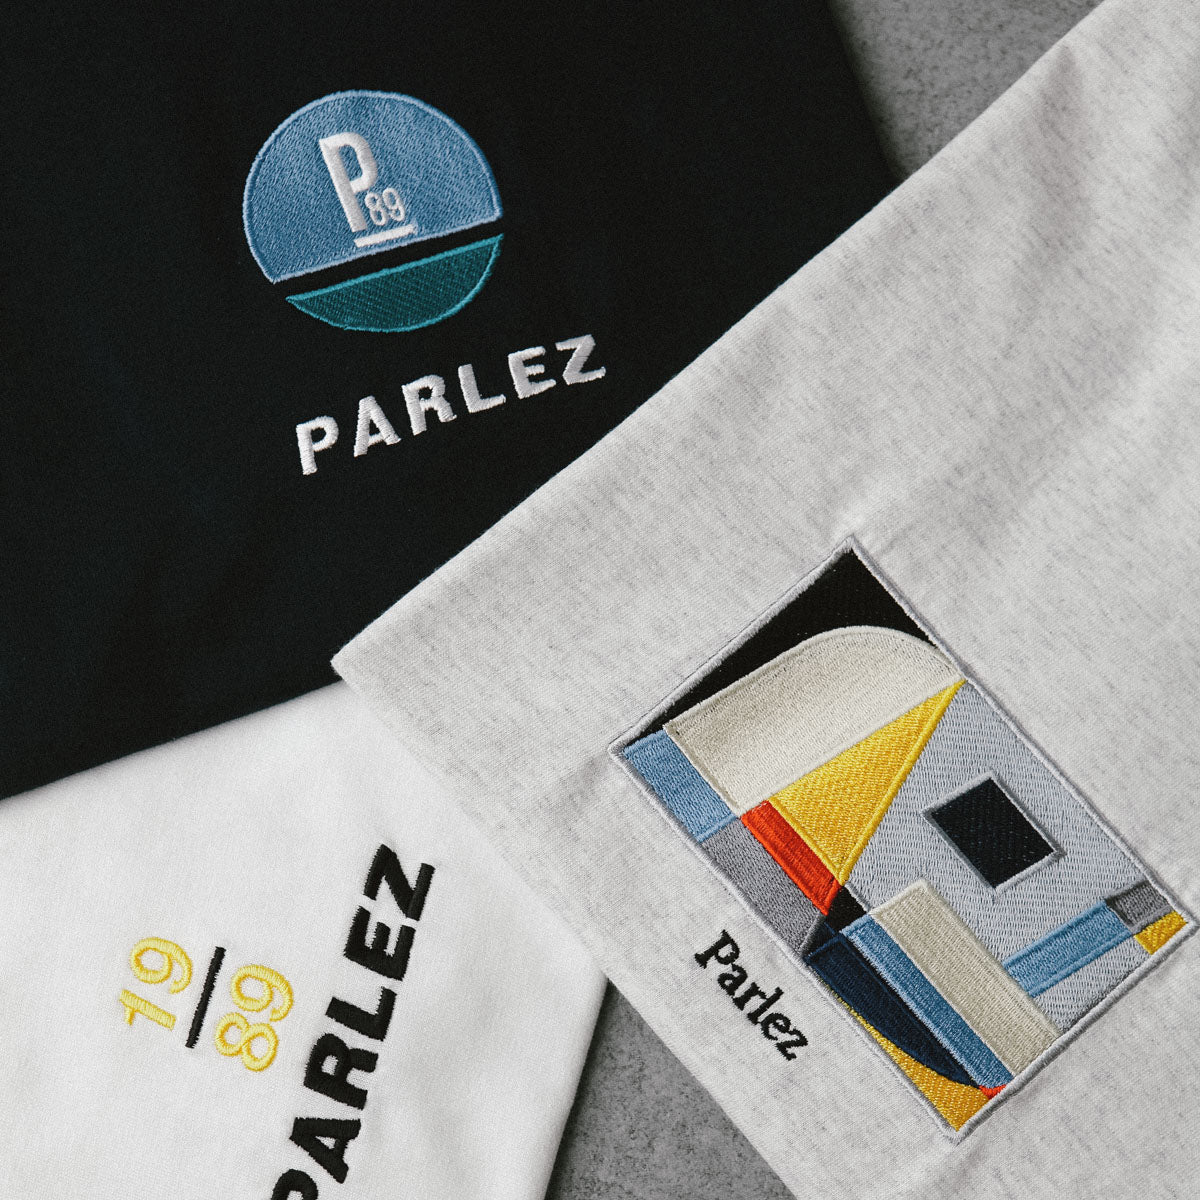 Parlez Q2 2020: Collection Overview | Flatspot